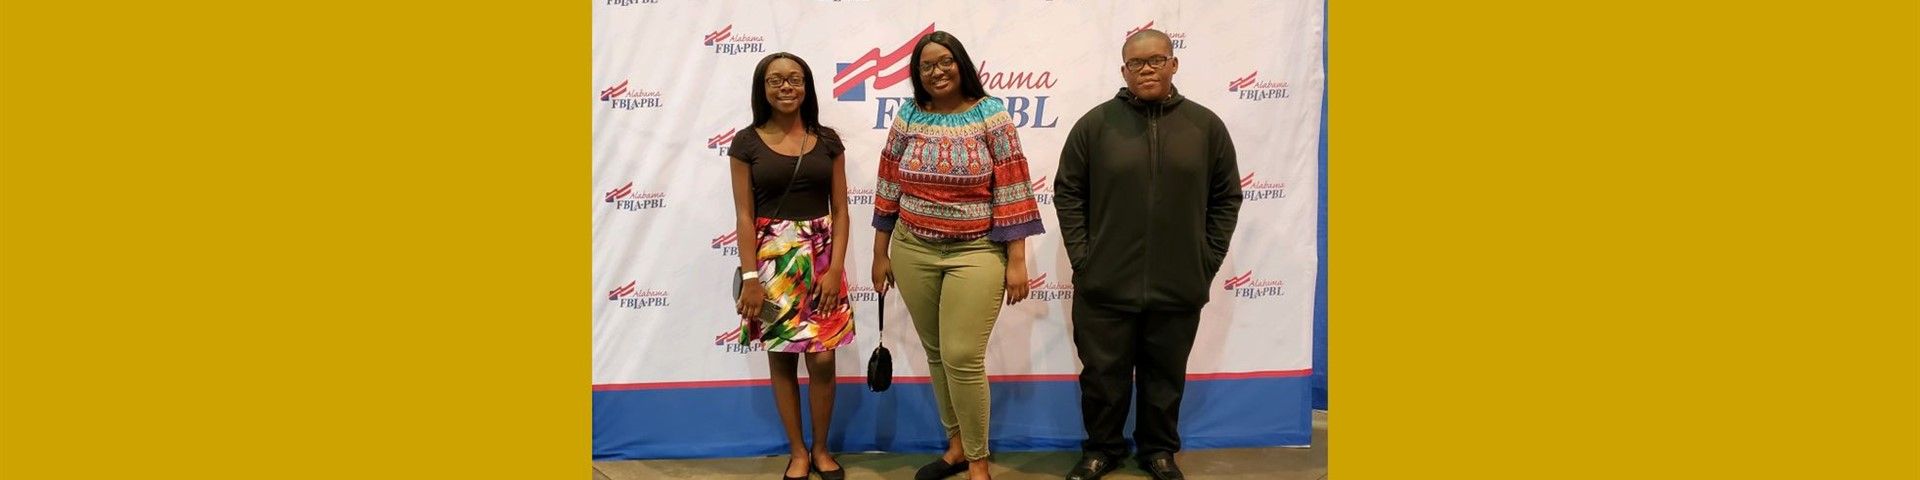 Joint Leadership Development Conference (JLDC) Birmingham, AL Attendees: JAG Officers, Alexis Hall, President & Denrone Mitchell, Vice President;  FBLA Officer Kaliyah Williams, President